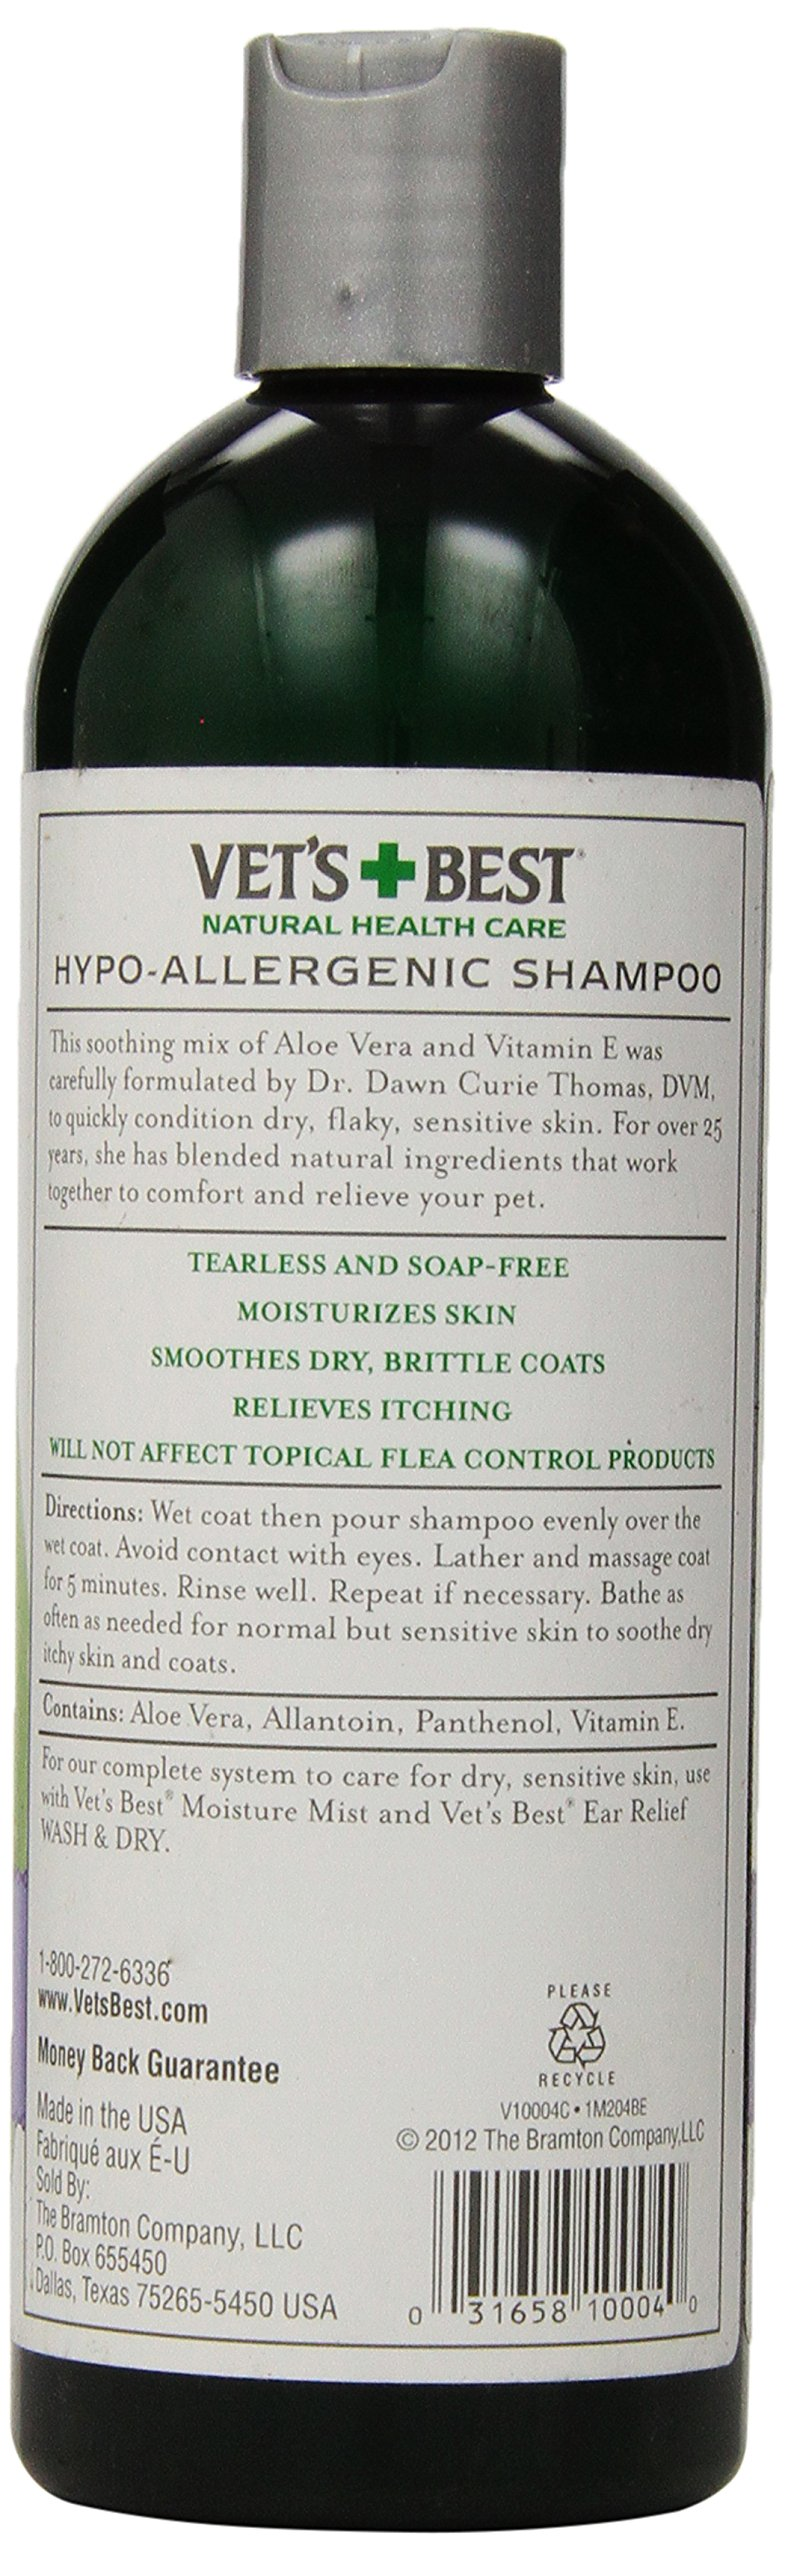 Vet's Best Hypo-Allergenic Shampoo for Dogs with Sensitive Skin, Relieves Discomfort from Dry, Itchy Skin, Cleans, Moisturizes, and Conditions Skin and Coat, 470 ml